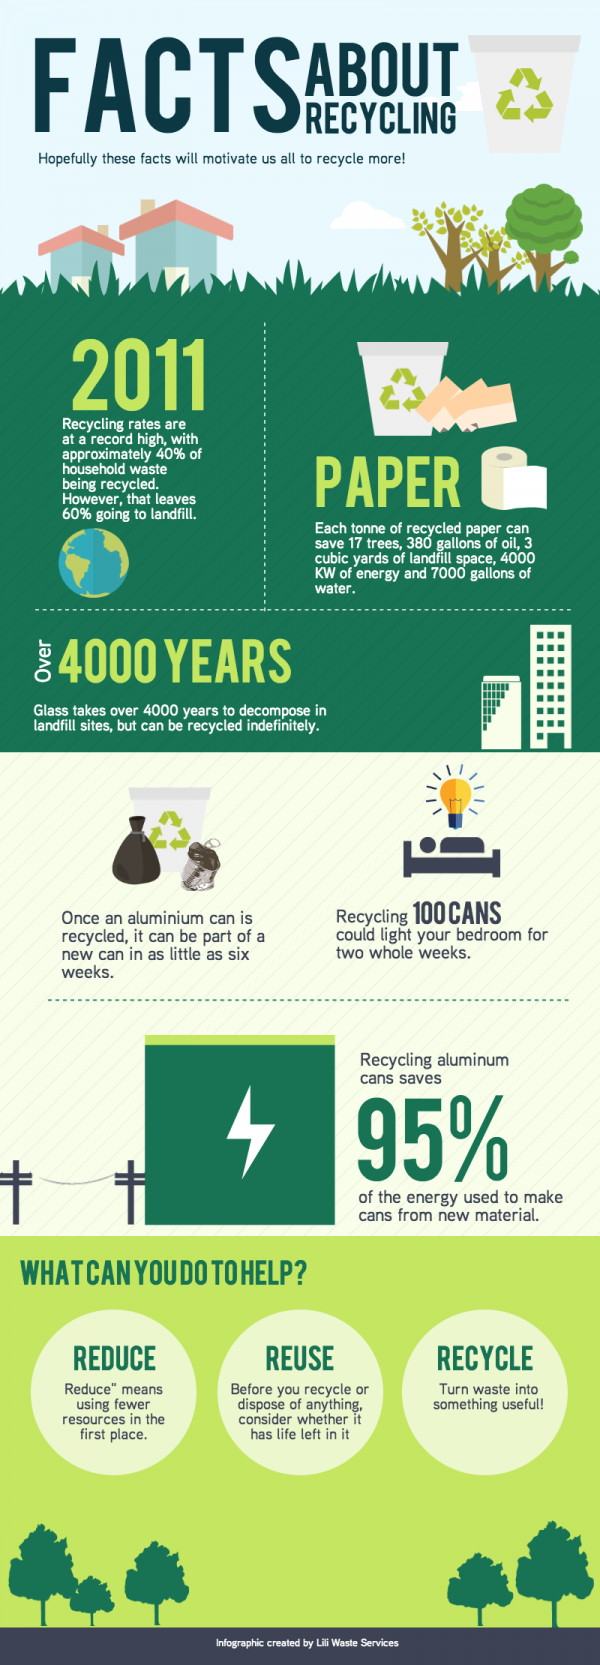 Facts About Recycling